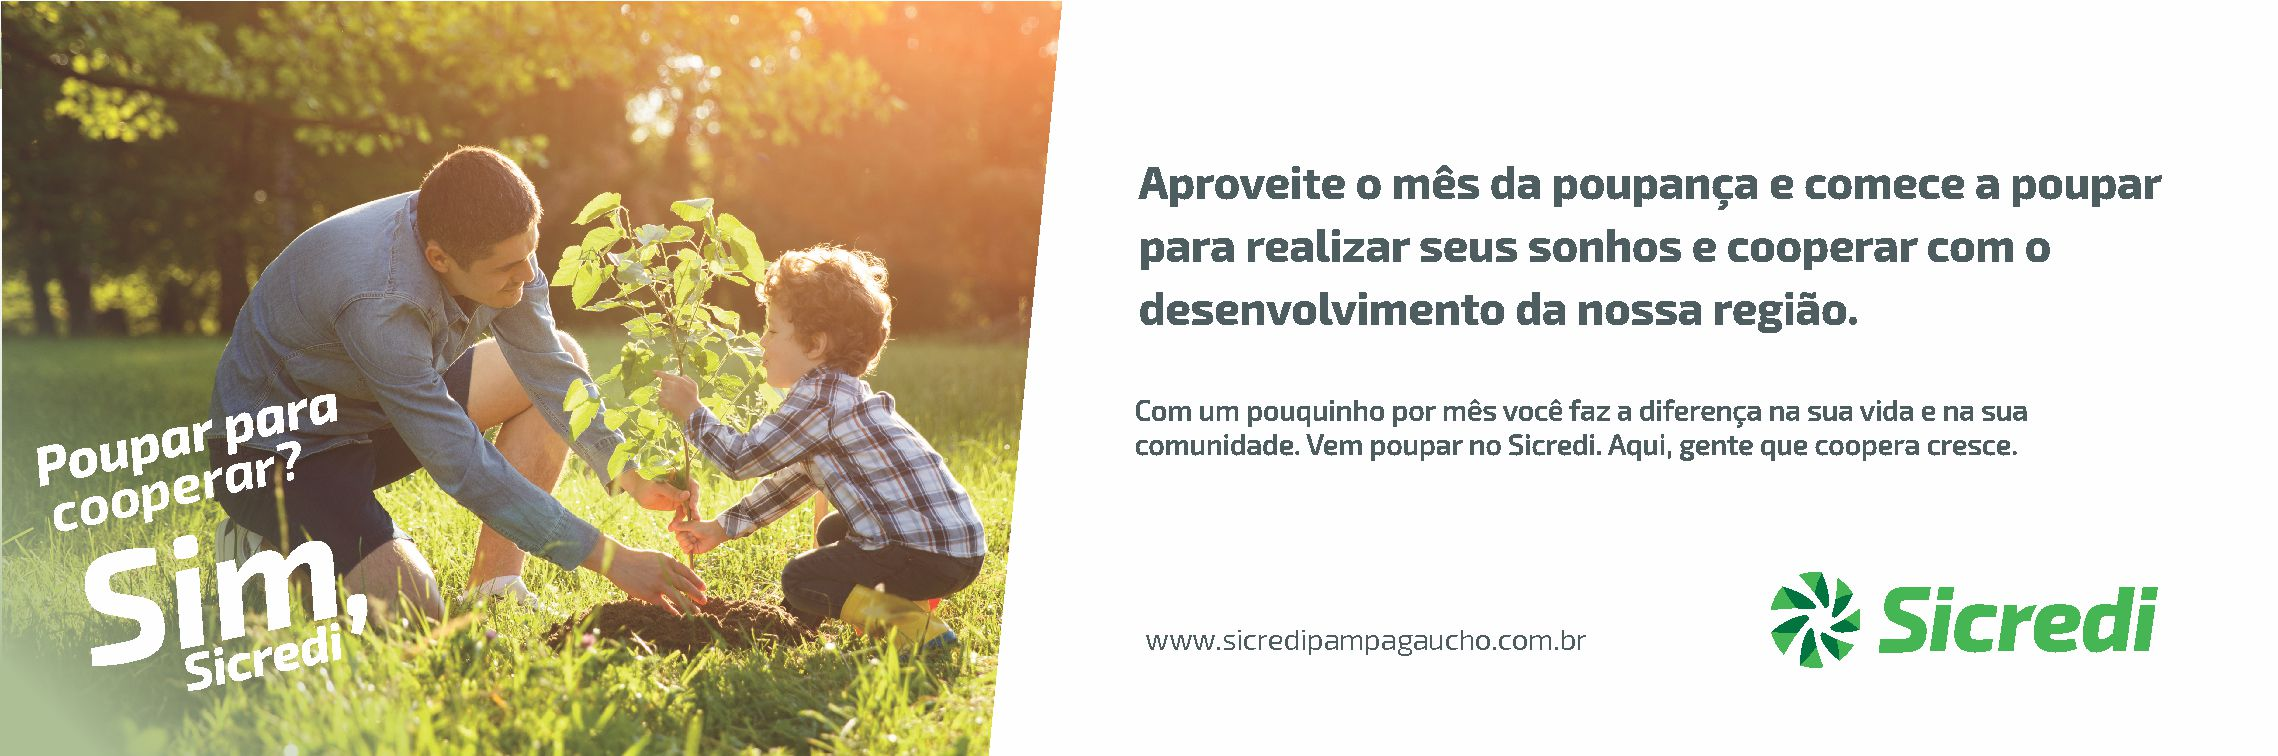 Poupança? É Sim, Sicredi - Aproveite para fazer a diferença em sua vida financeira